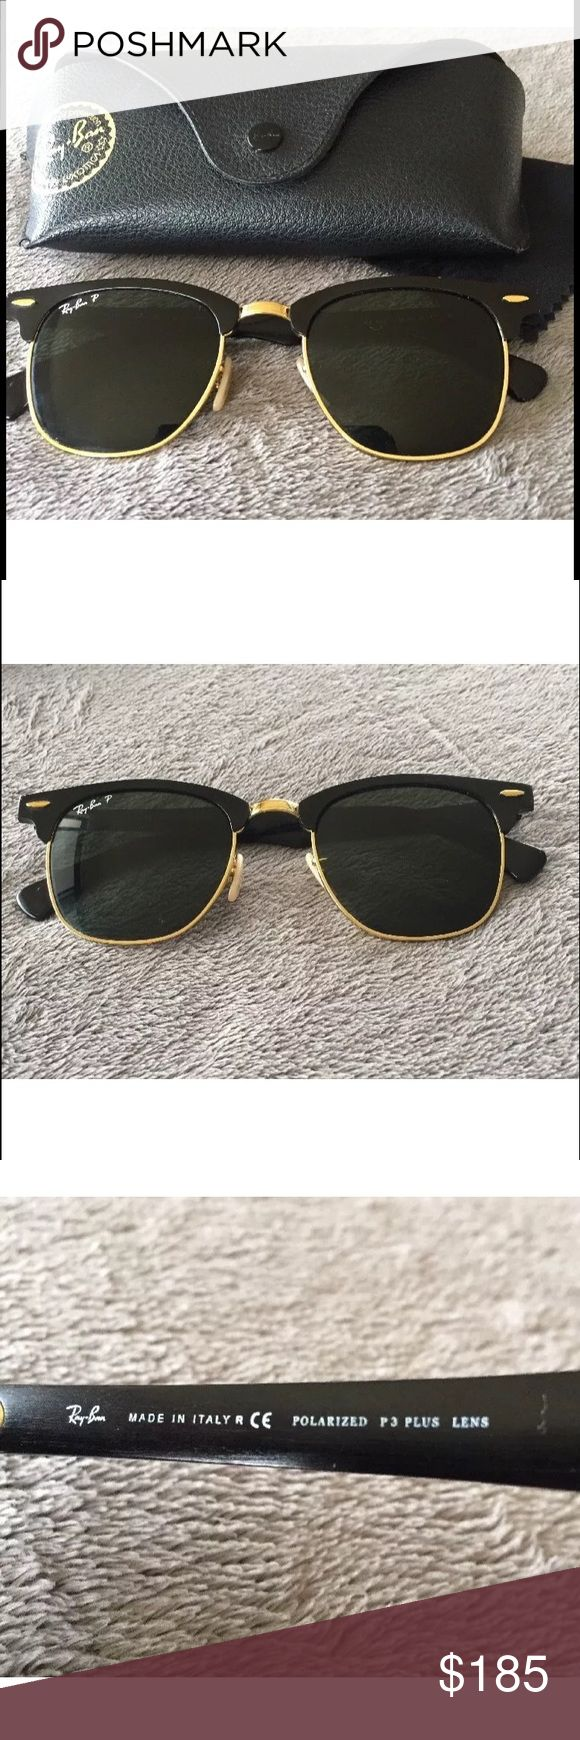 Ray-Ban Unisex Polarized Clubmaster Sunglasses Preowned. NO starches. Polarized. Case included. 🕶 Ray-Ban Accessories Sunglasses